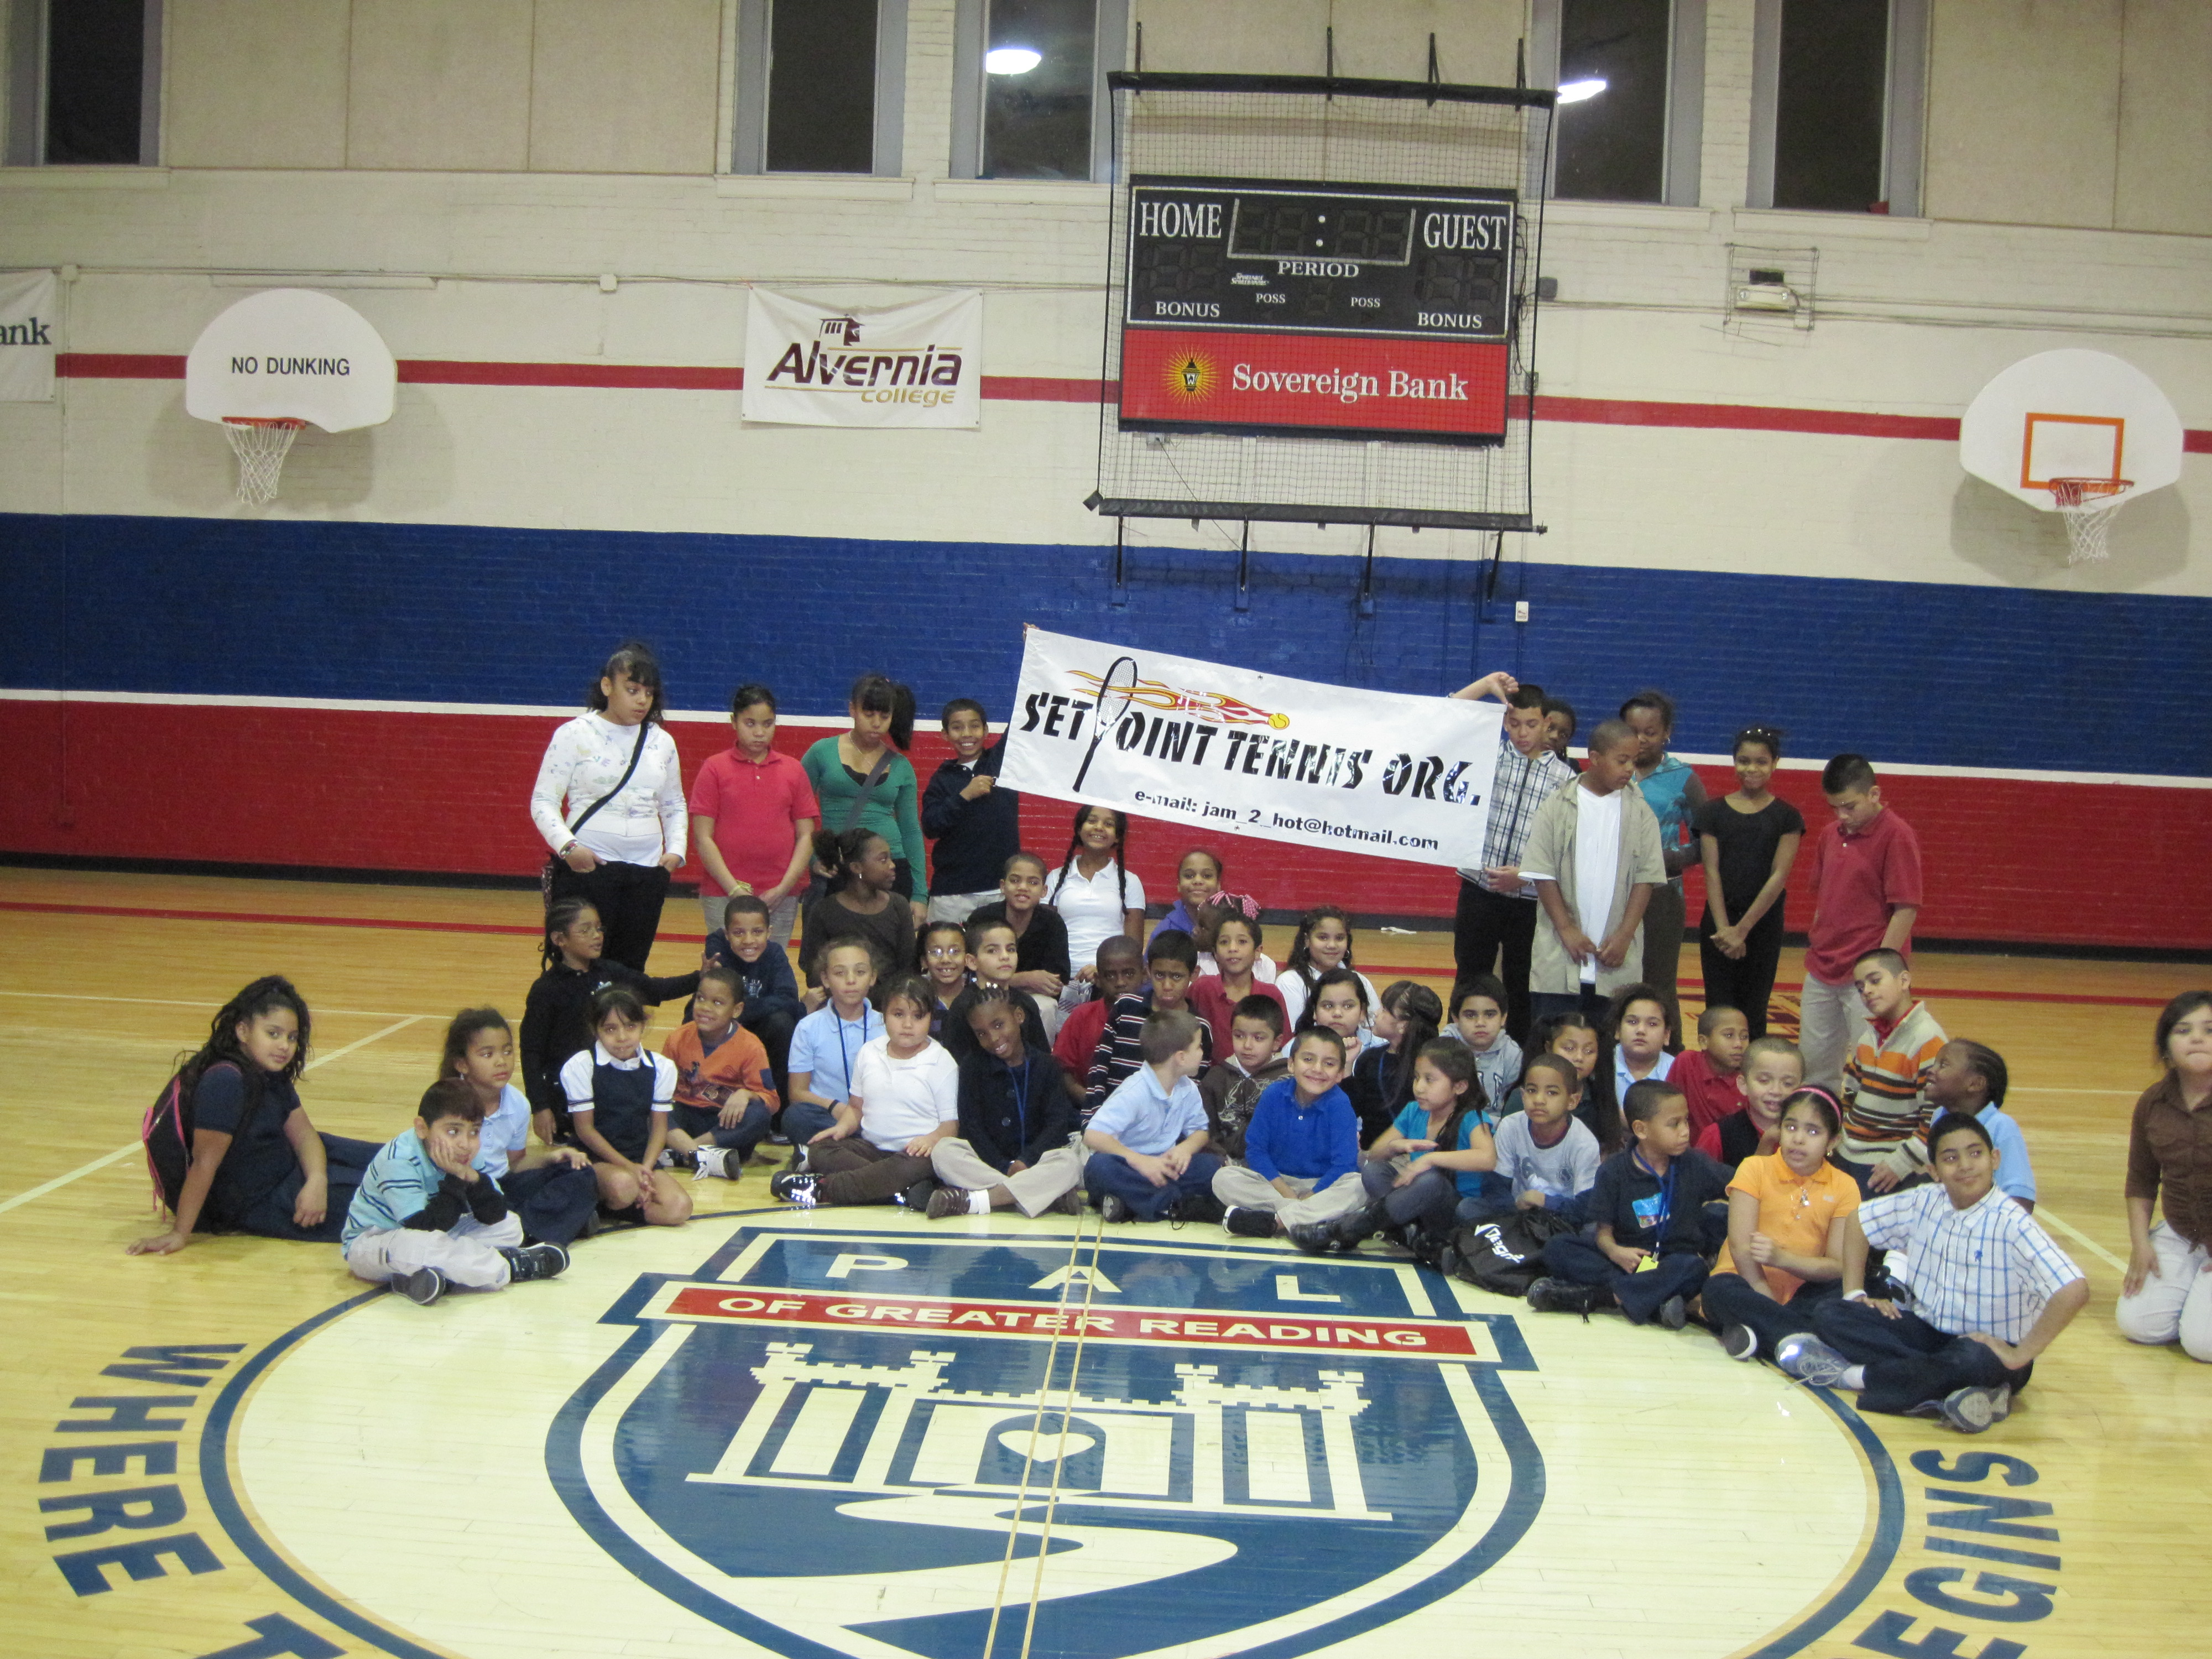 Youth at the Olivet Boys & Girls Club in the City of Reading Pa.